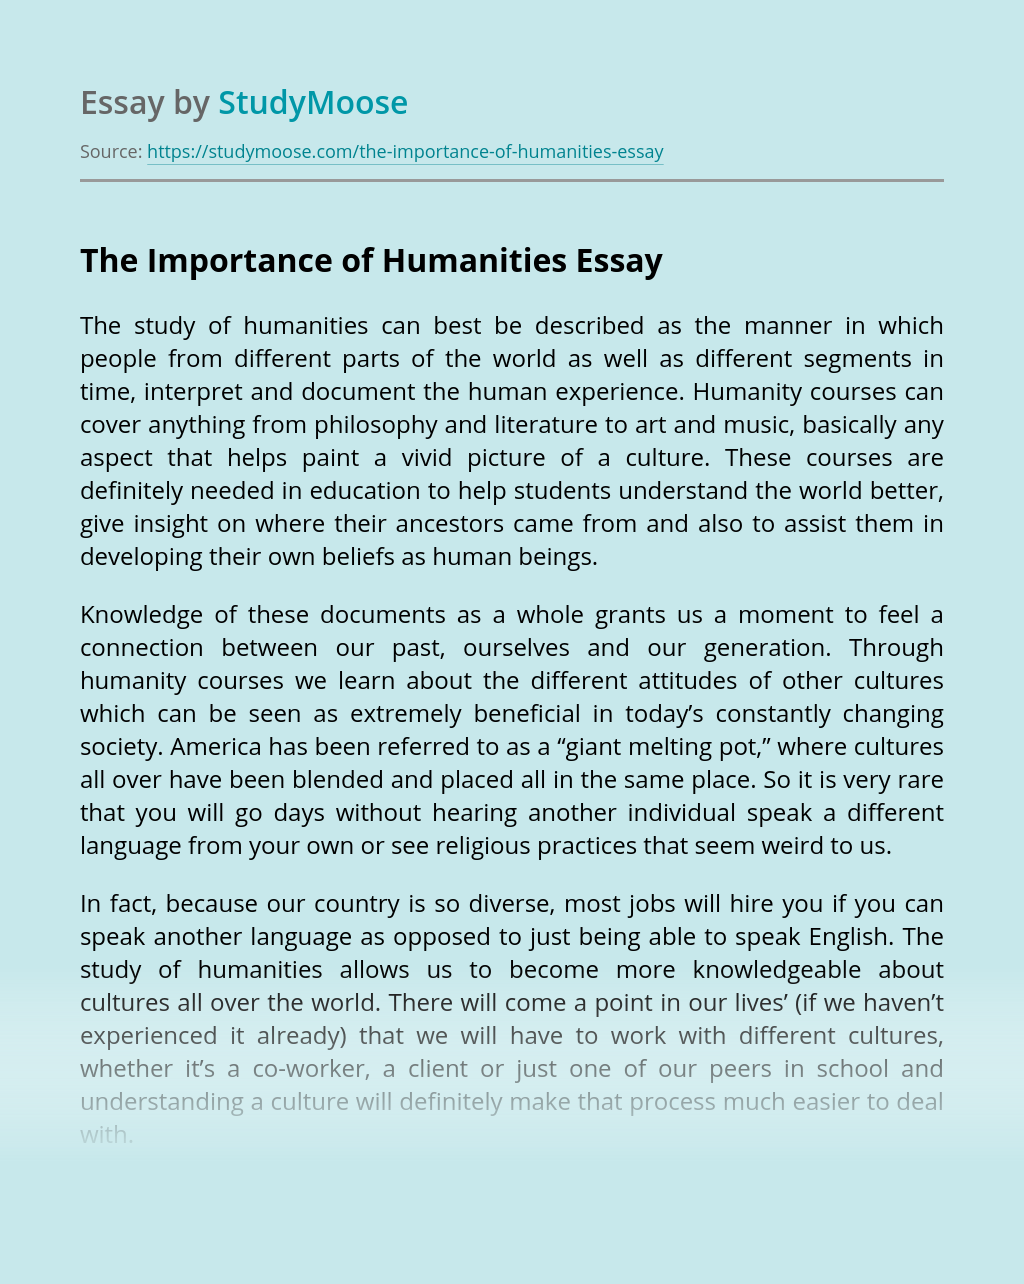 The Importance of Humanities